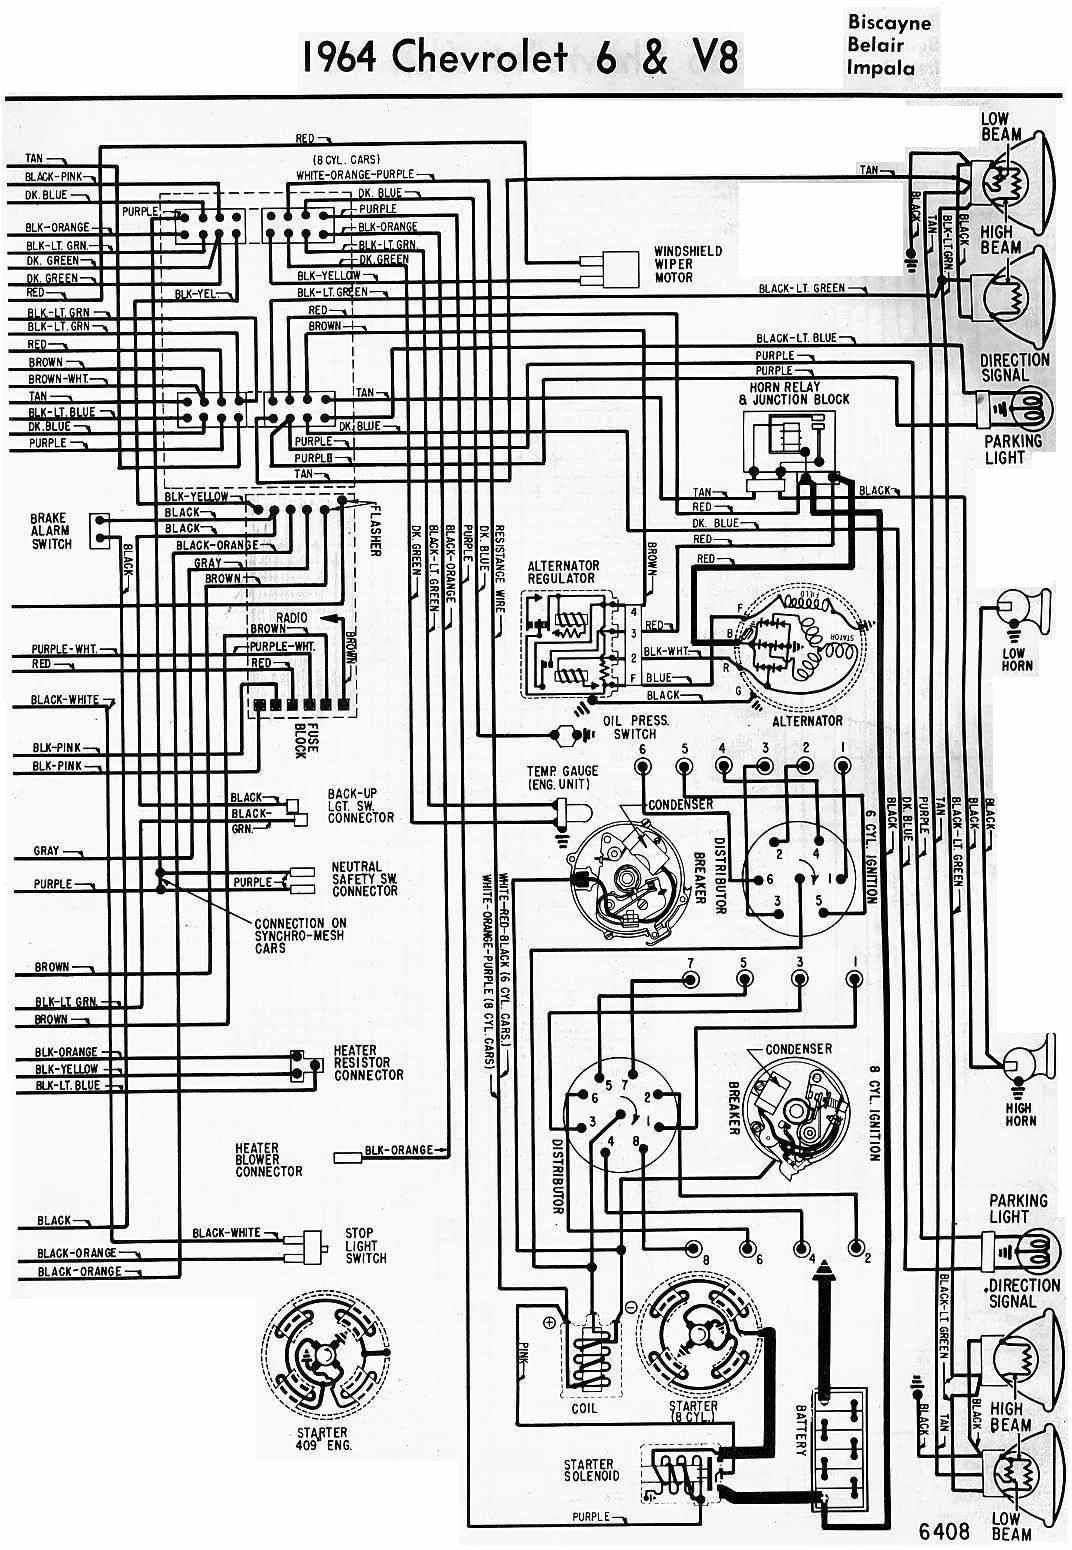 hight resolution of electrical wiring diagram of 1964 chevrolet 6 and v8 all